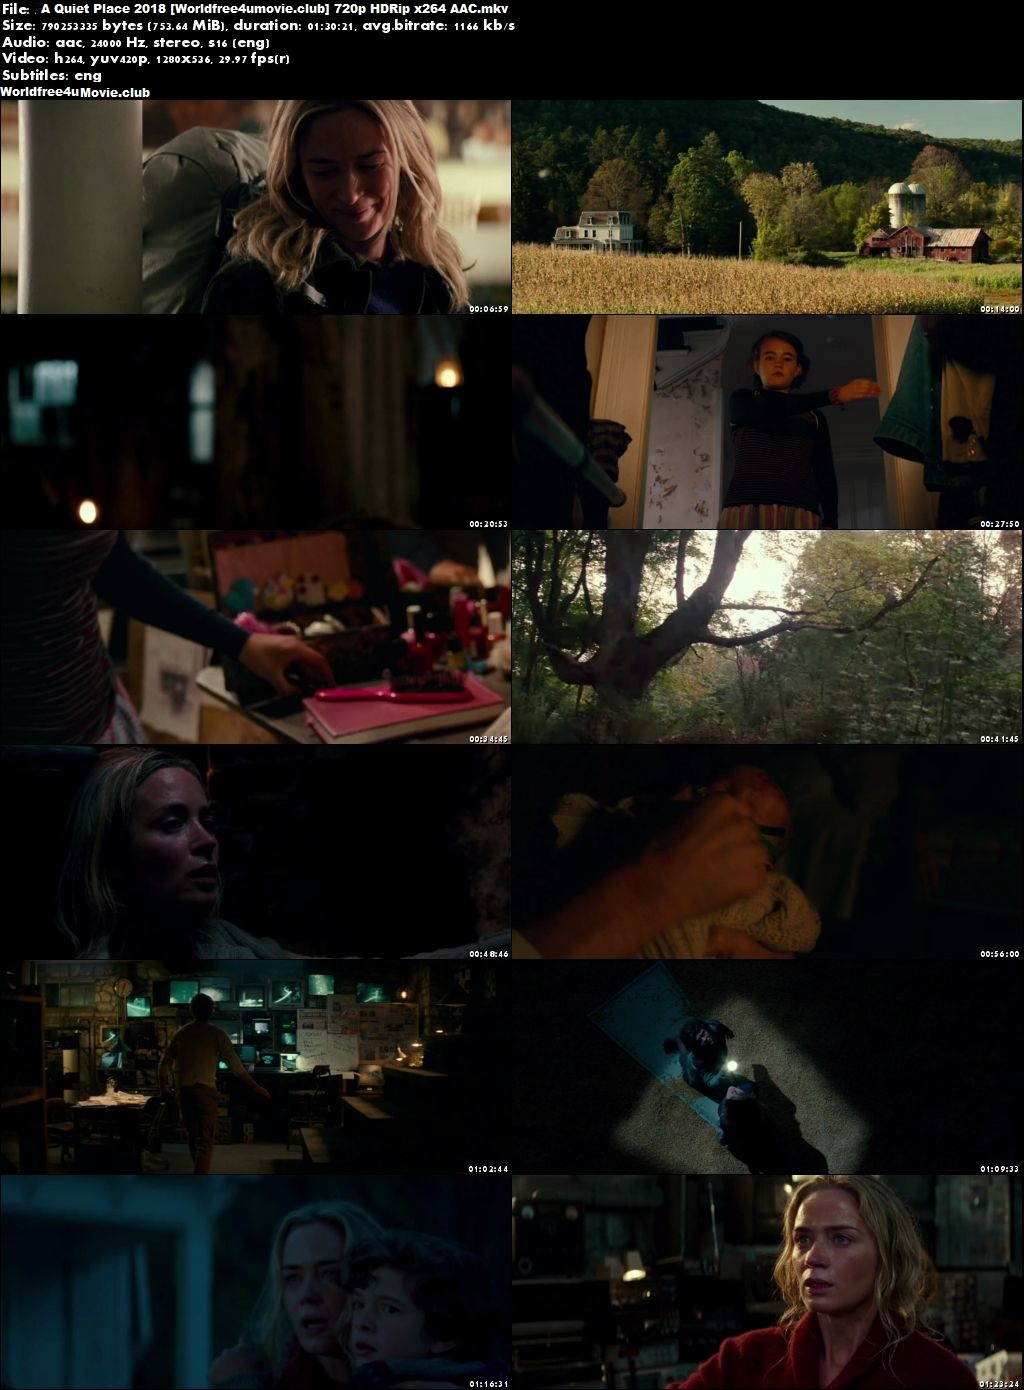 A Quiet Place 2018 worldfree4u Full HDRip 720p English Movie Download